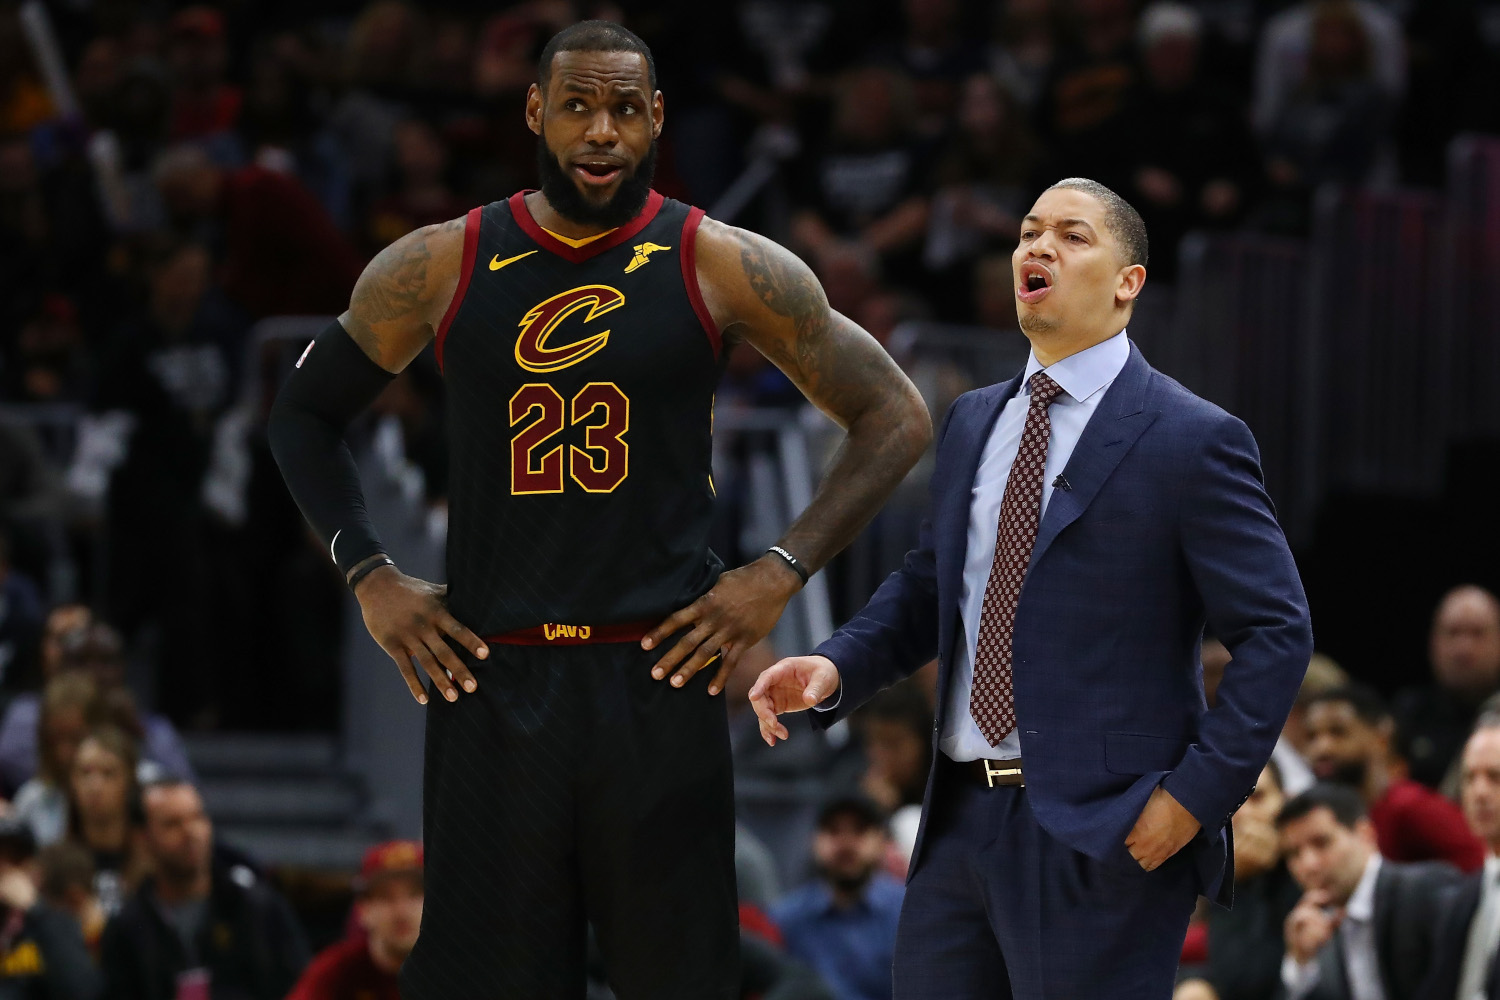 LA Clippers Coach Tyronn Lue Not Intimidated by Superstars; Just Ask LeBron James, Kyrie Irving